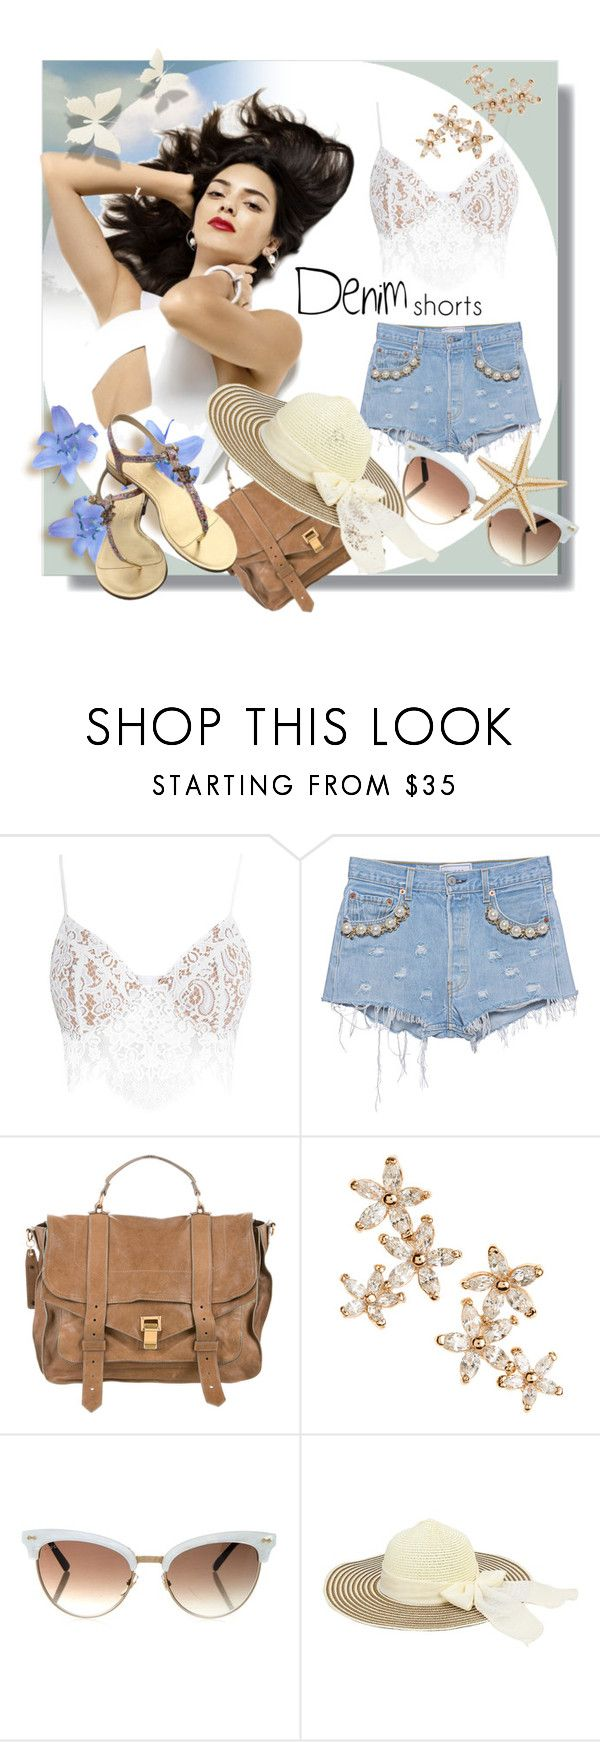 """Denim Shorts"" by kari-c ❤ liked on Polyvore featuring For Love & Lemons, Forte Couture, Proenza Schouler, Bonheur, Gucci, Chanel, jeanshorts, denimshorts and cutoffs"